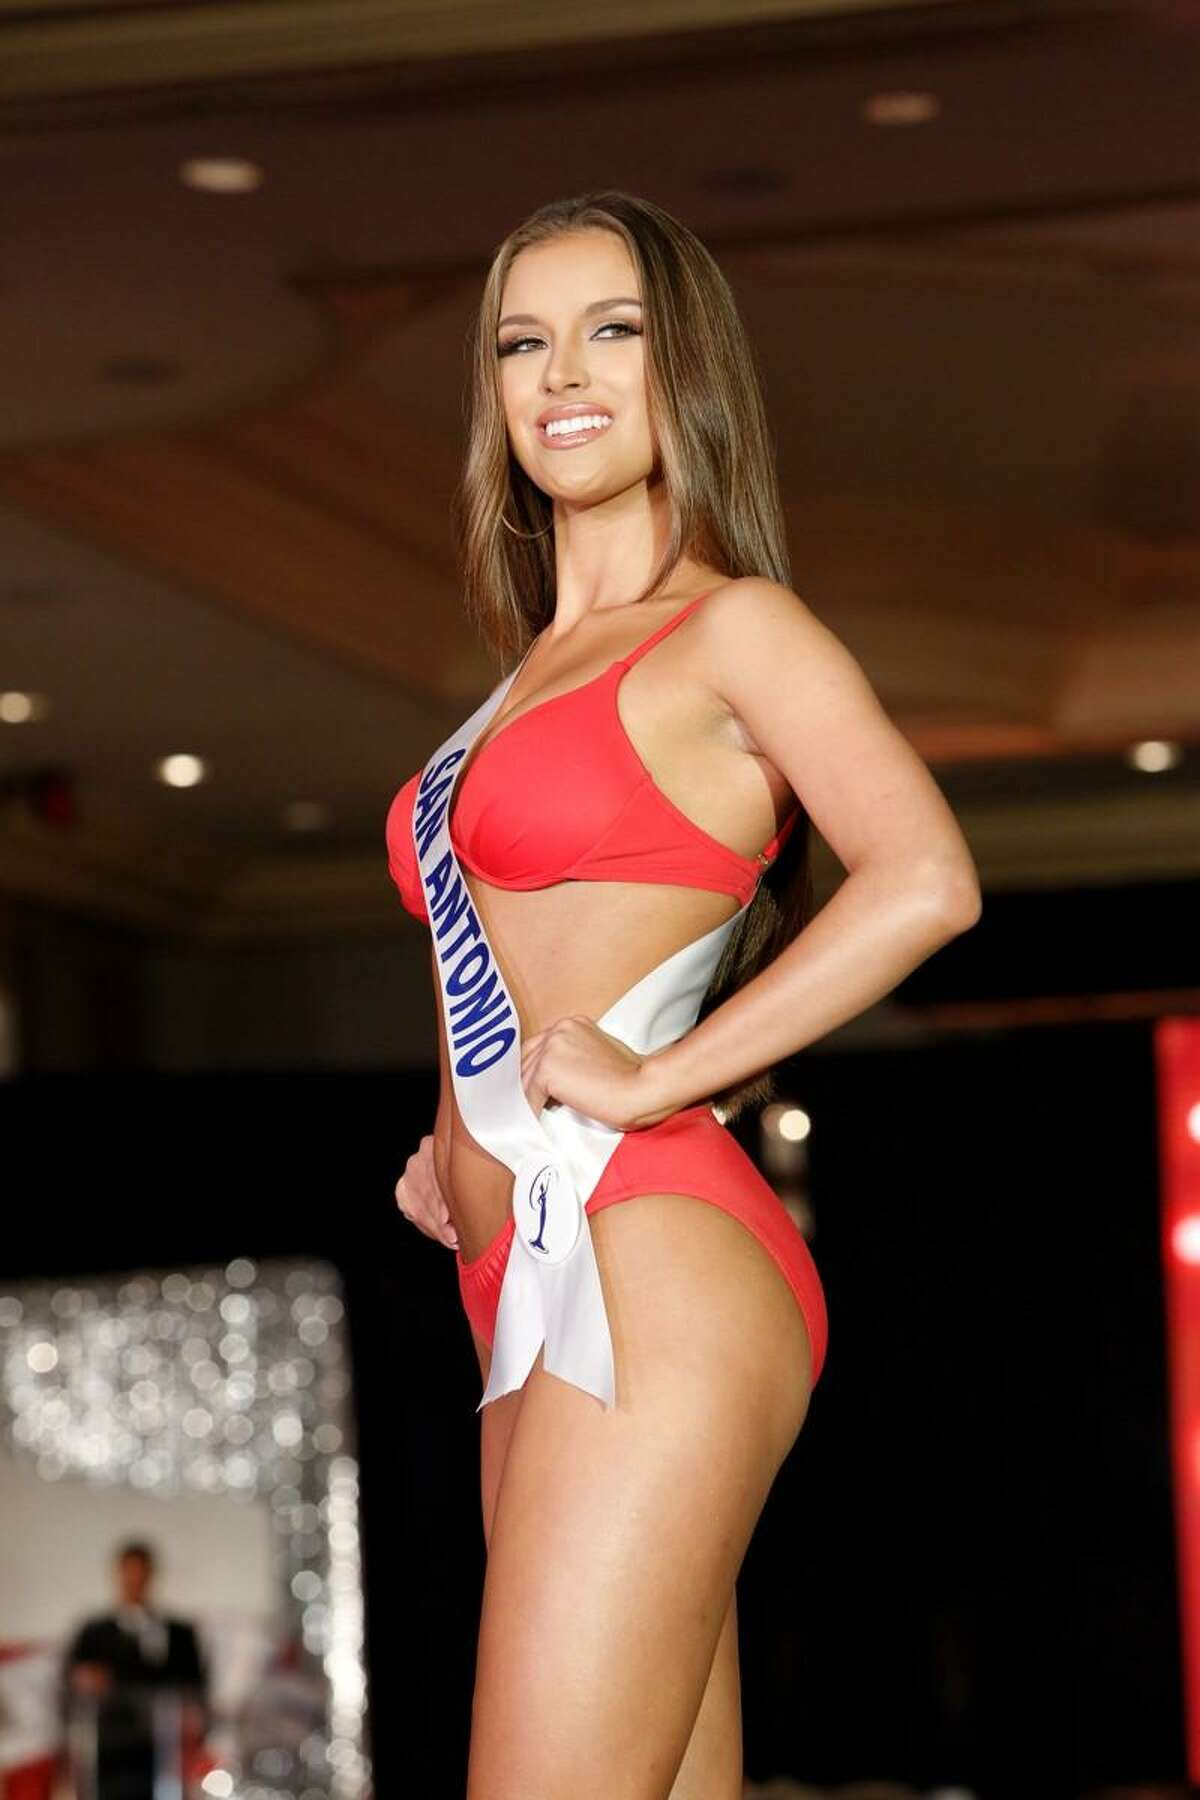 Miss Texas USA Alayah Benavidez considers the swimsuit portion of pageant competition a way to show off a contestant's confidence as well as fitness.